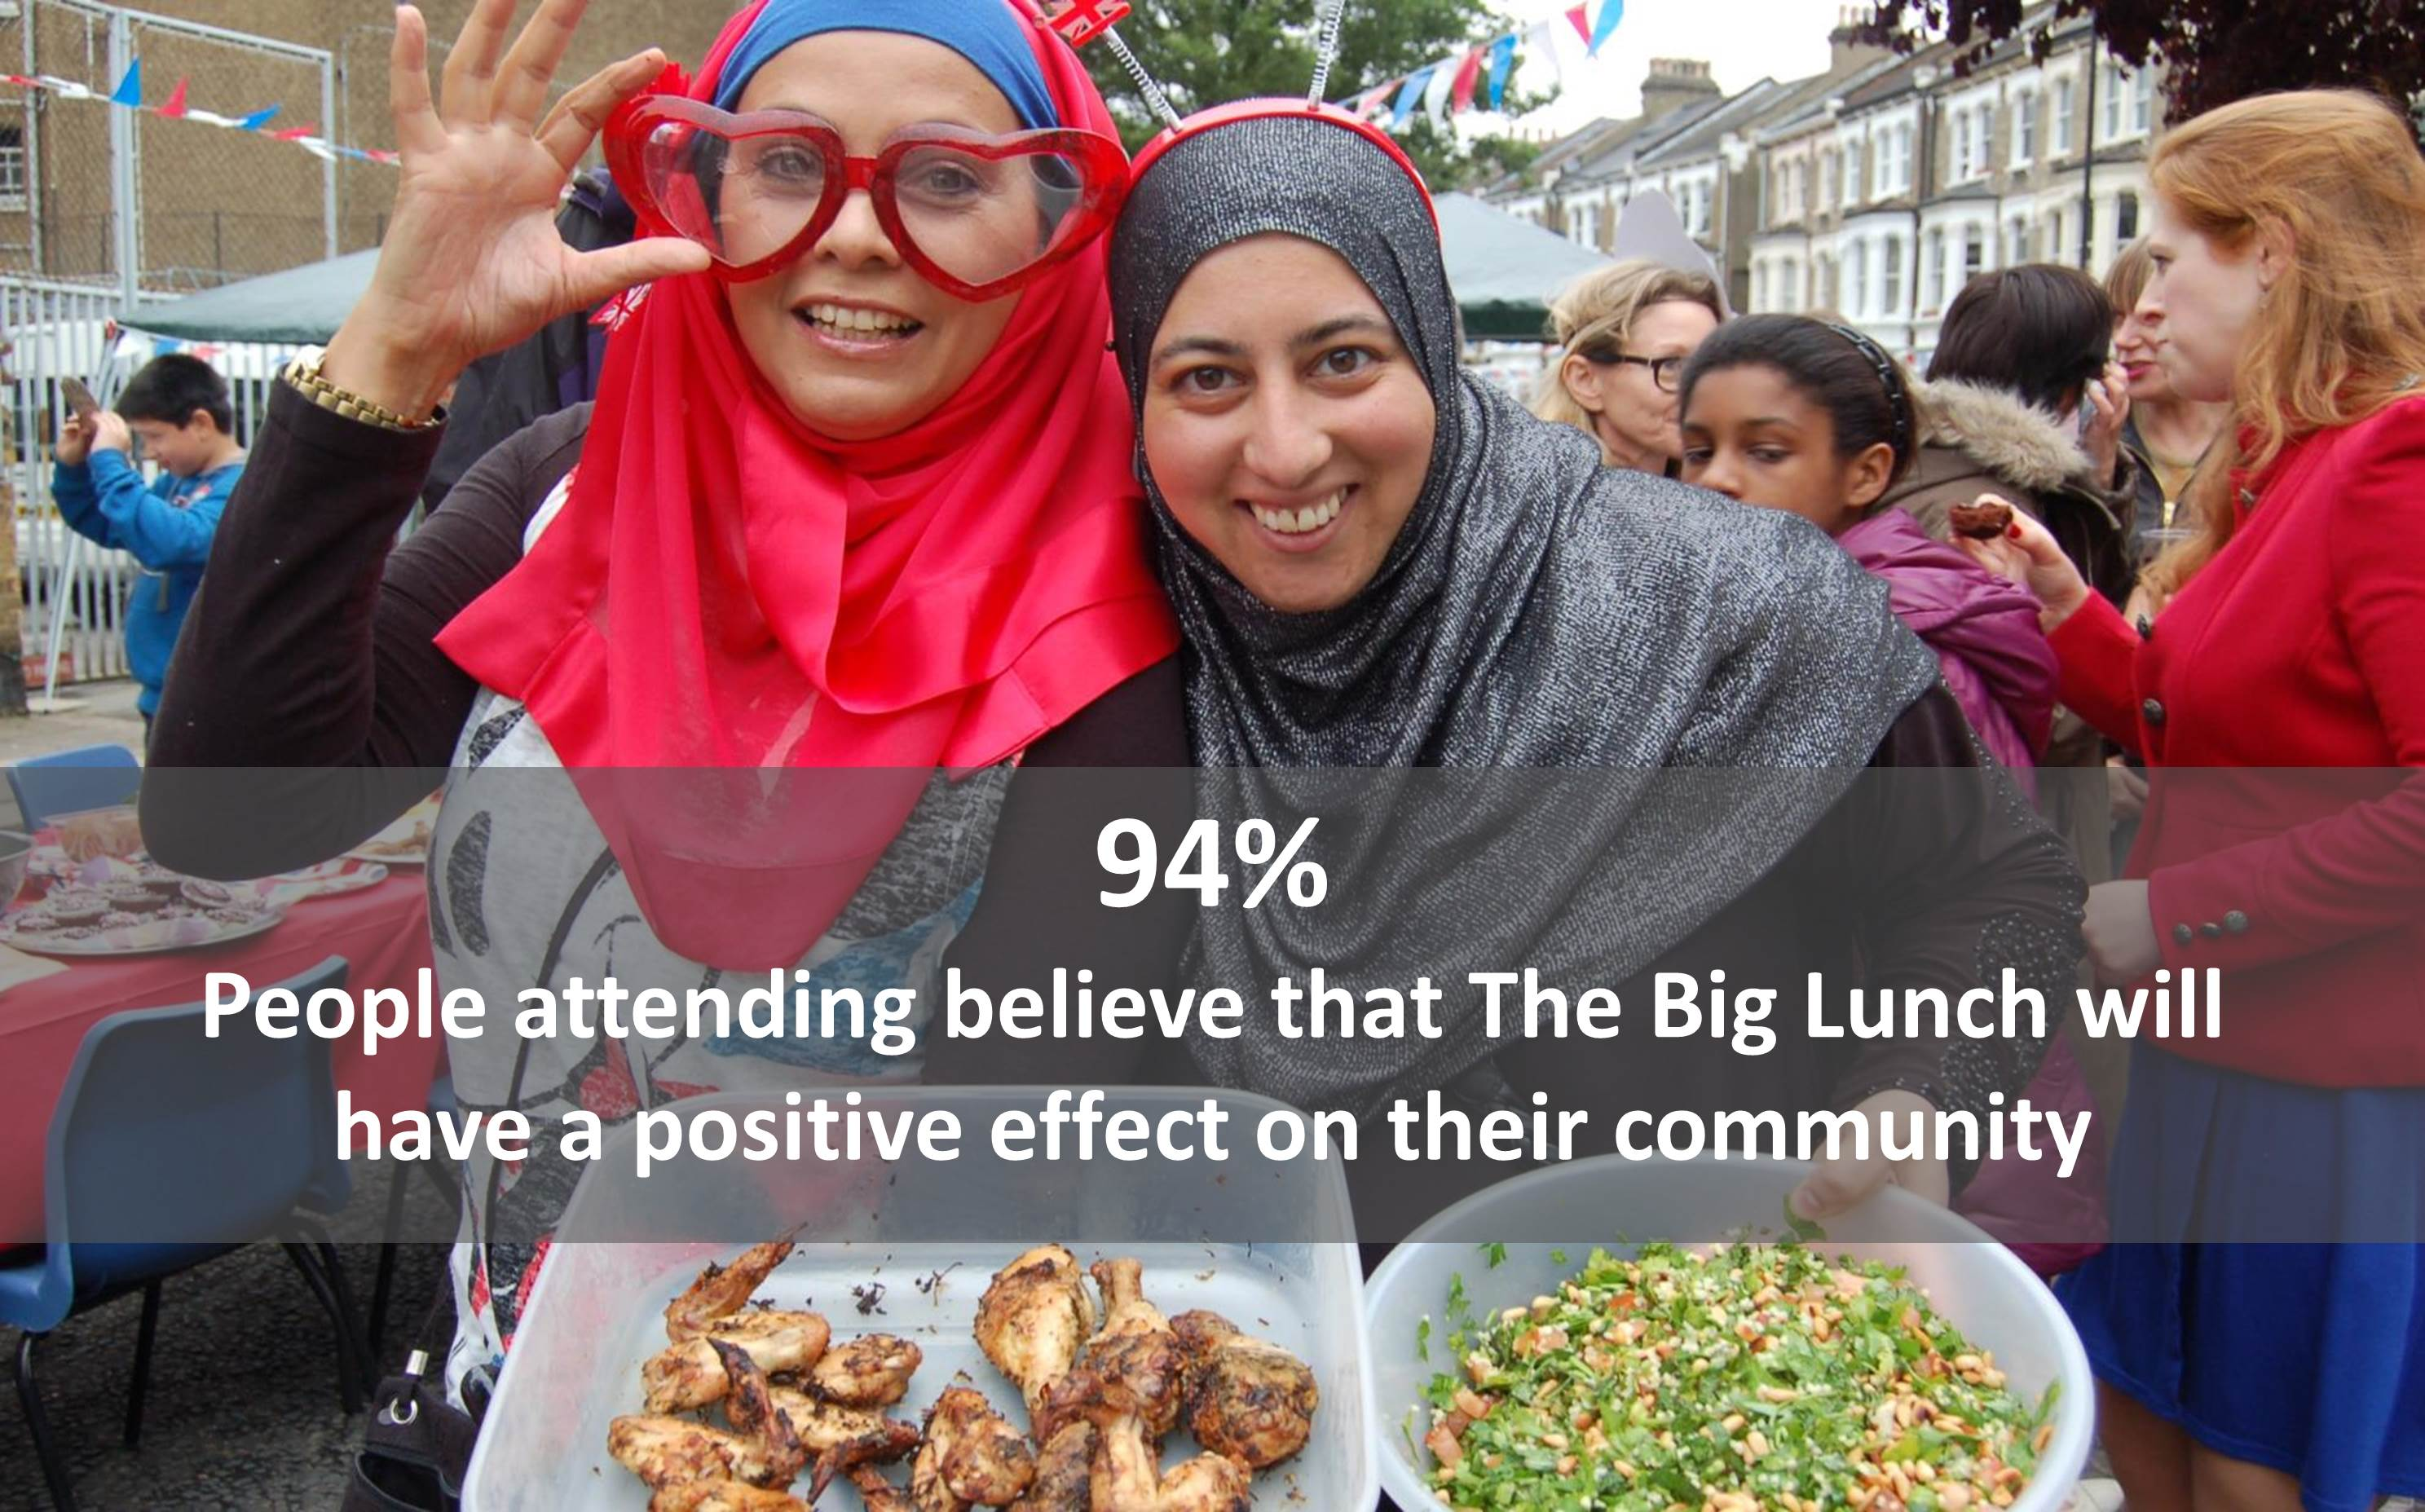 94% of people believe The Big Lunch will have a positive effect on their community